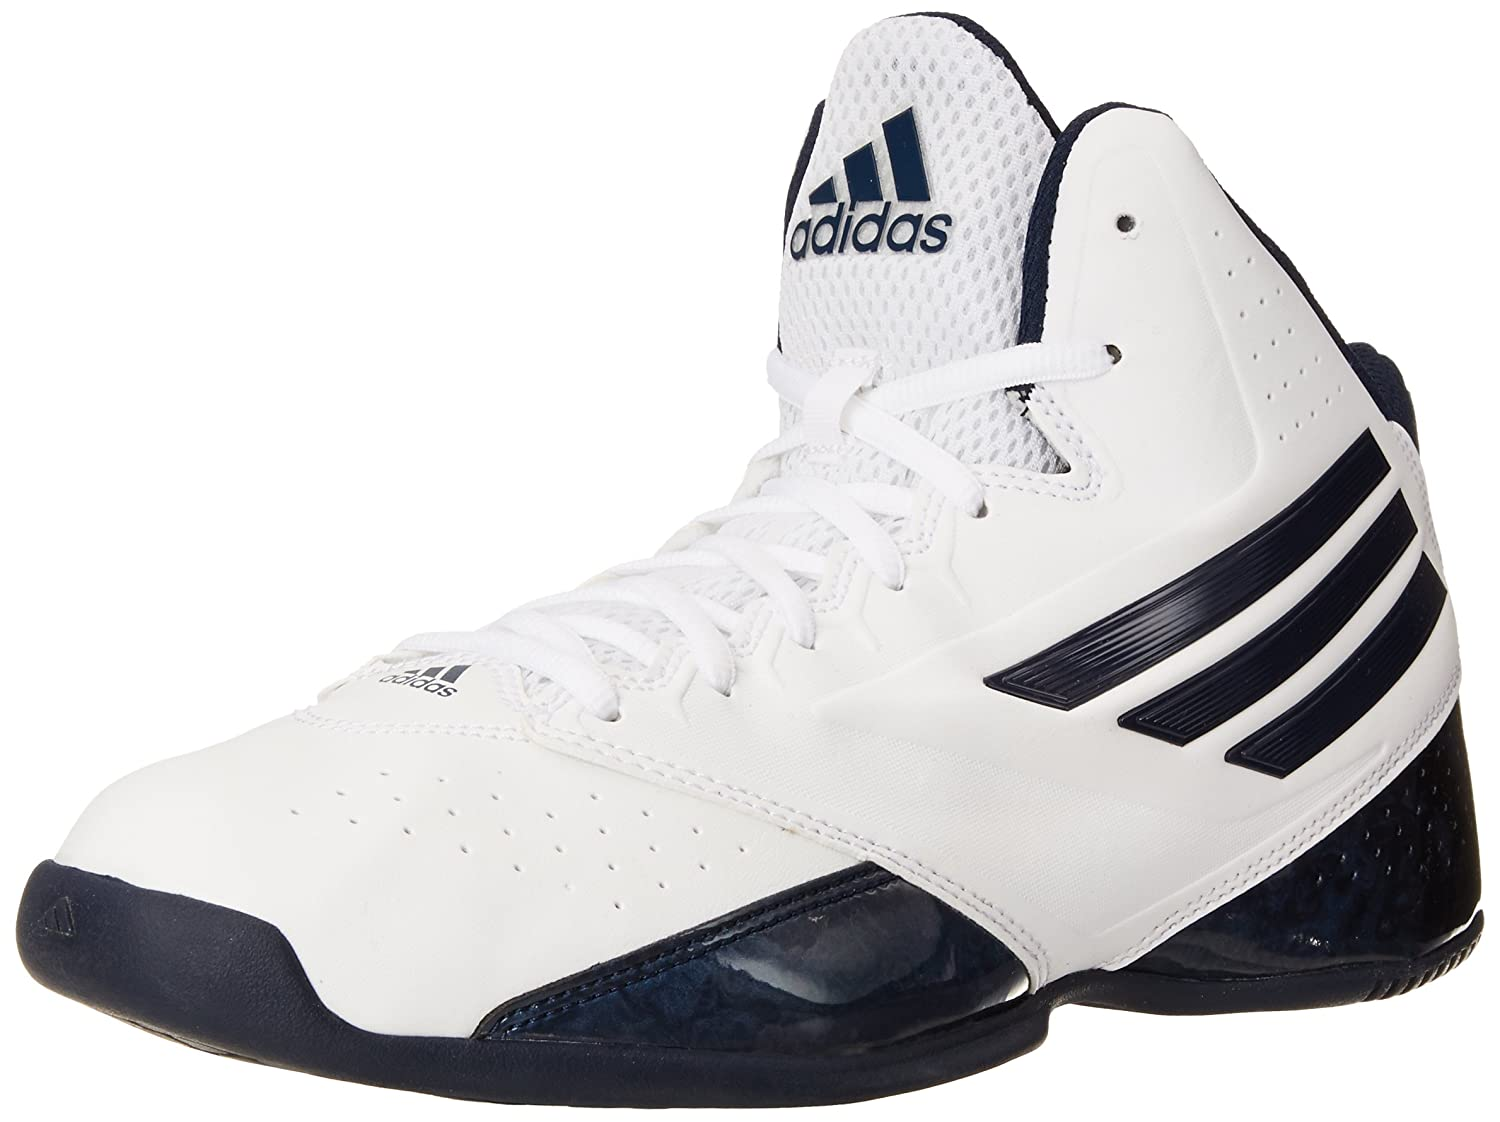 adidas Performance Men's 3 Series 2014 Basketball Shoe White/navy 12 D(M)  US: Buy Online at Low Prices in India - Amazon.in